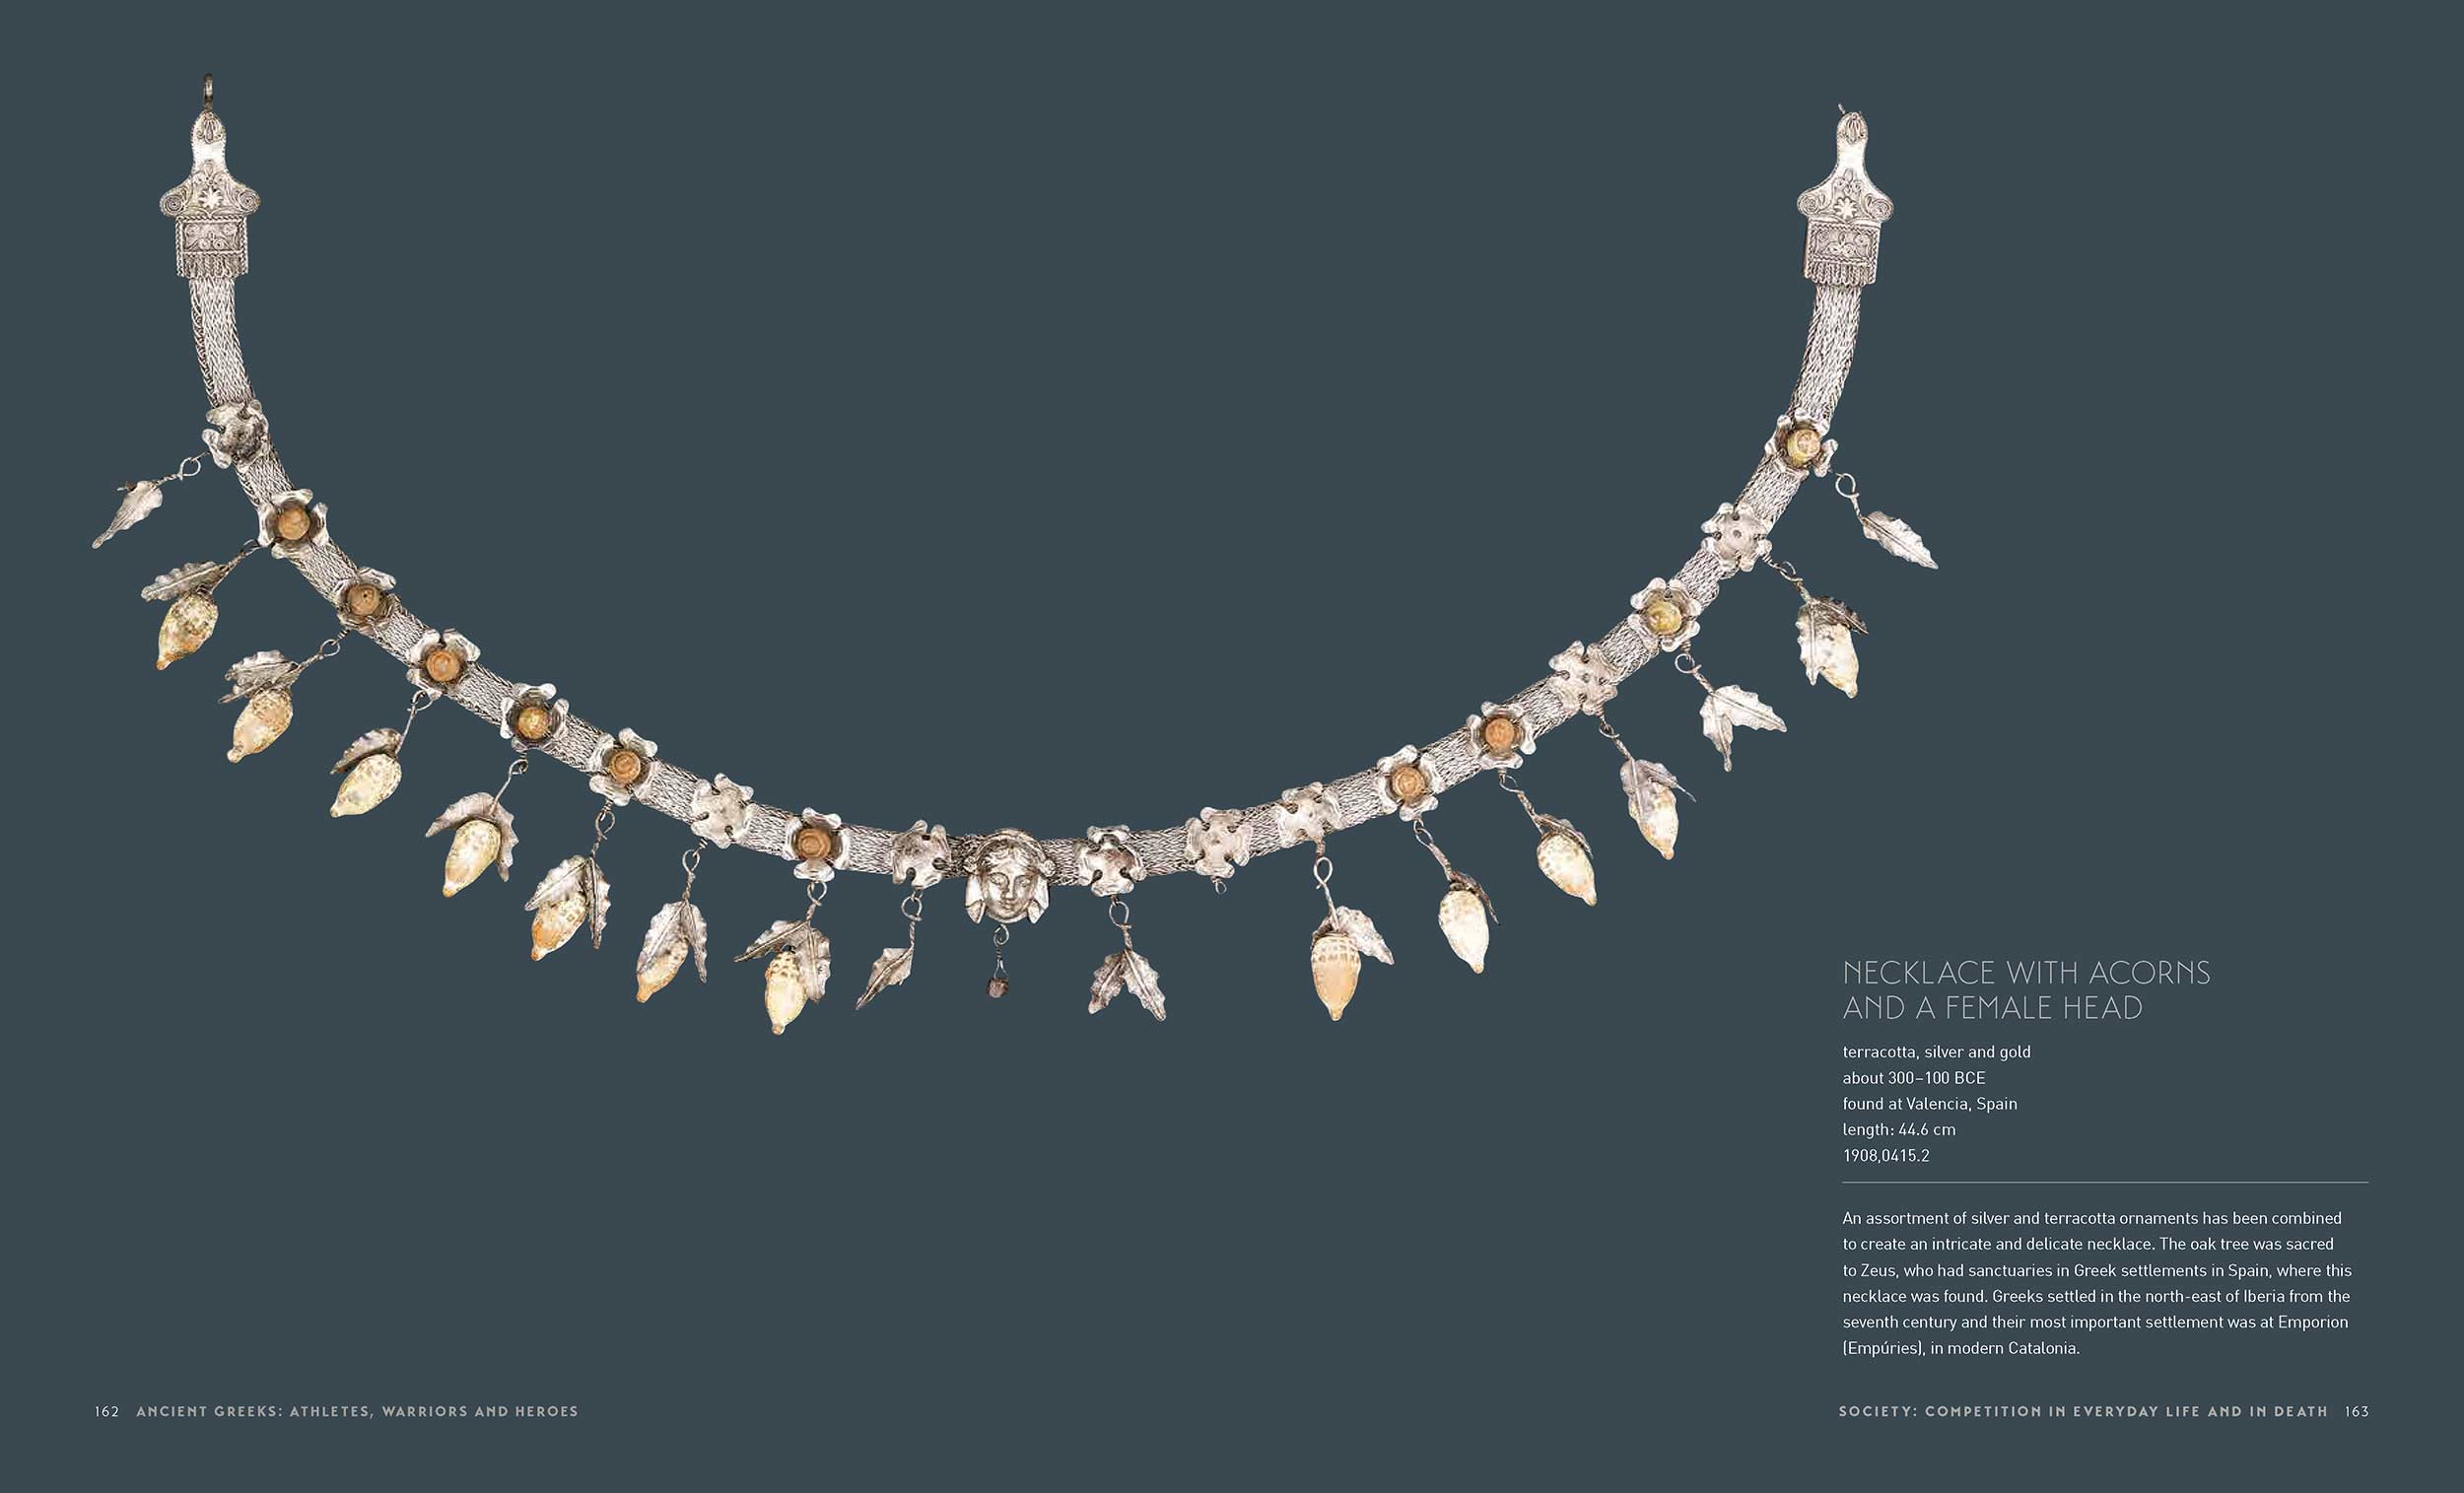 Sample page of a catalogue featuring an ornate necklace made of precious metals and text. - click to view larger image